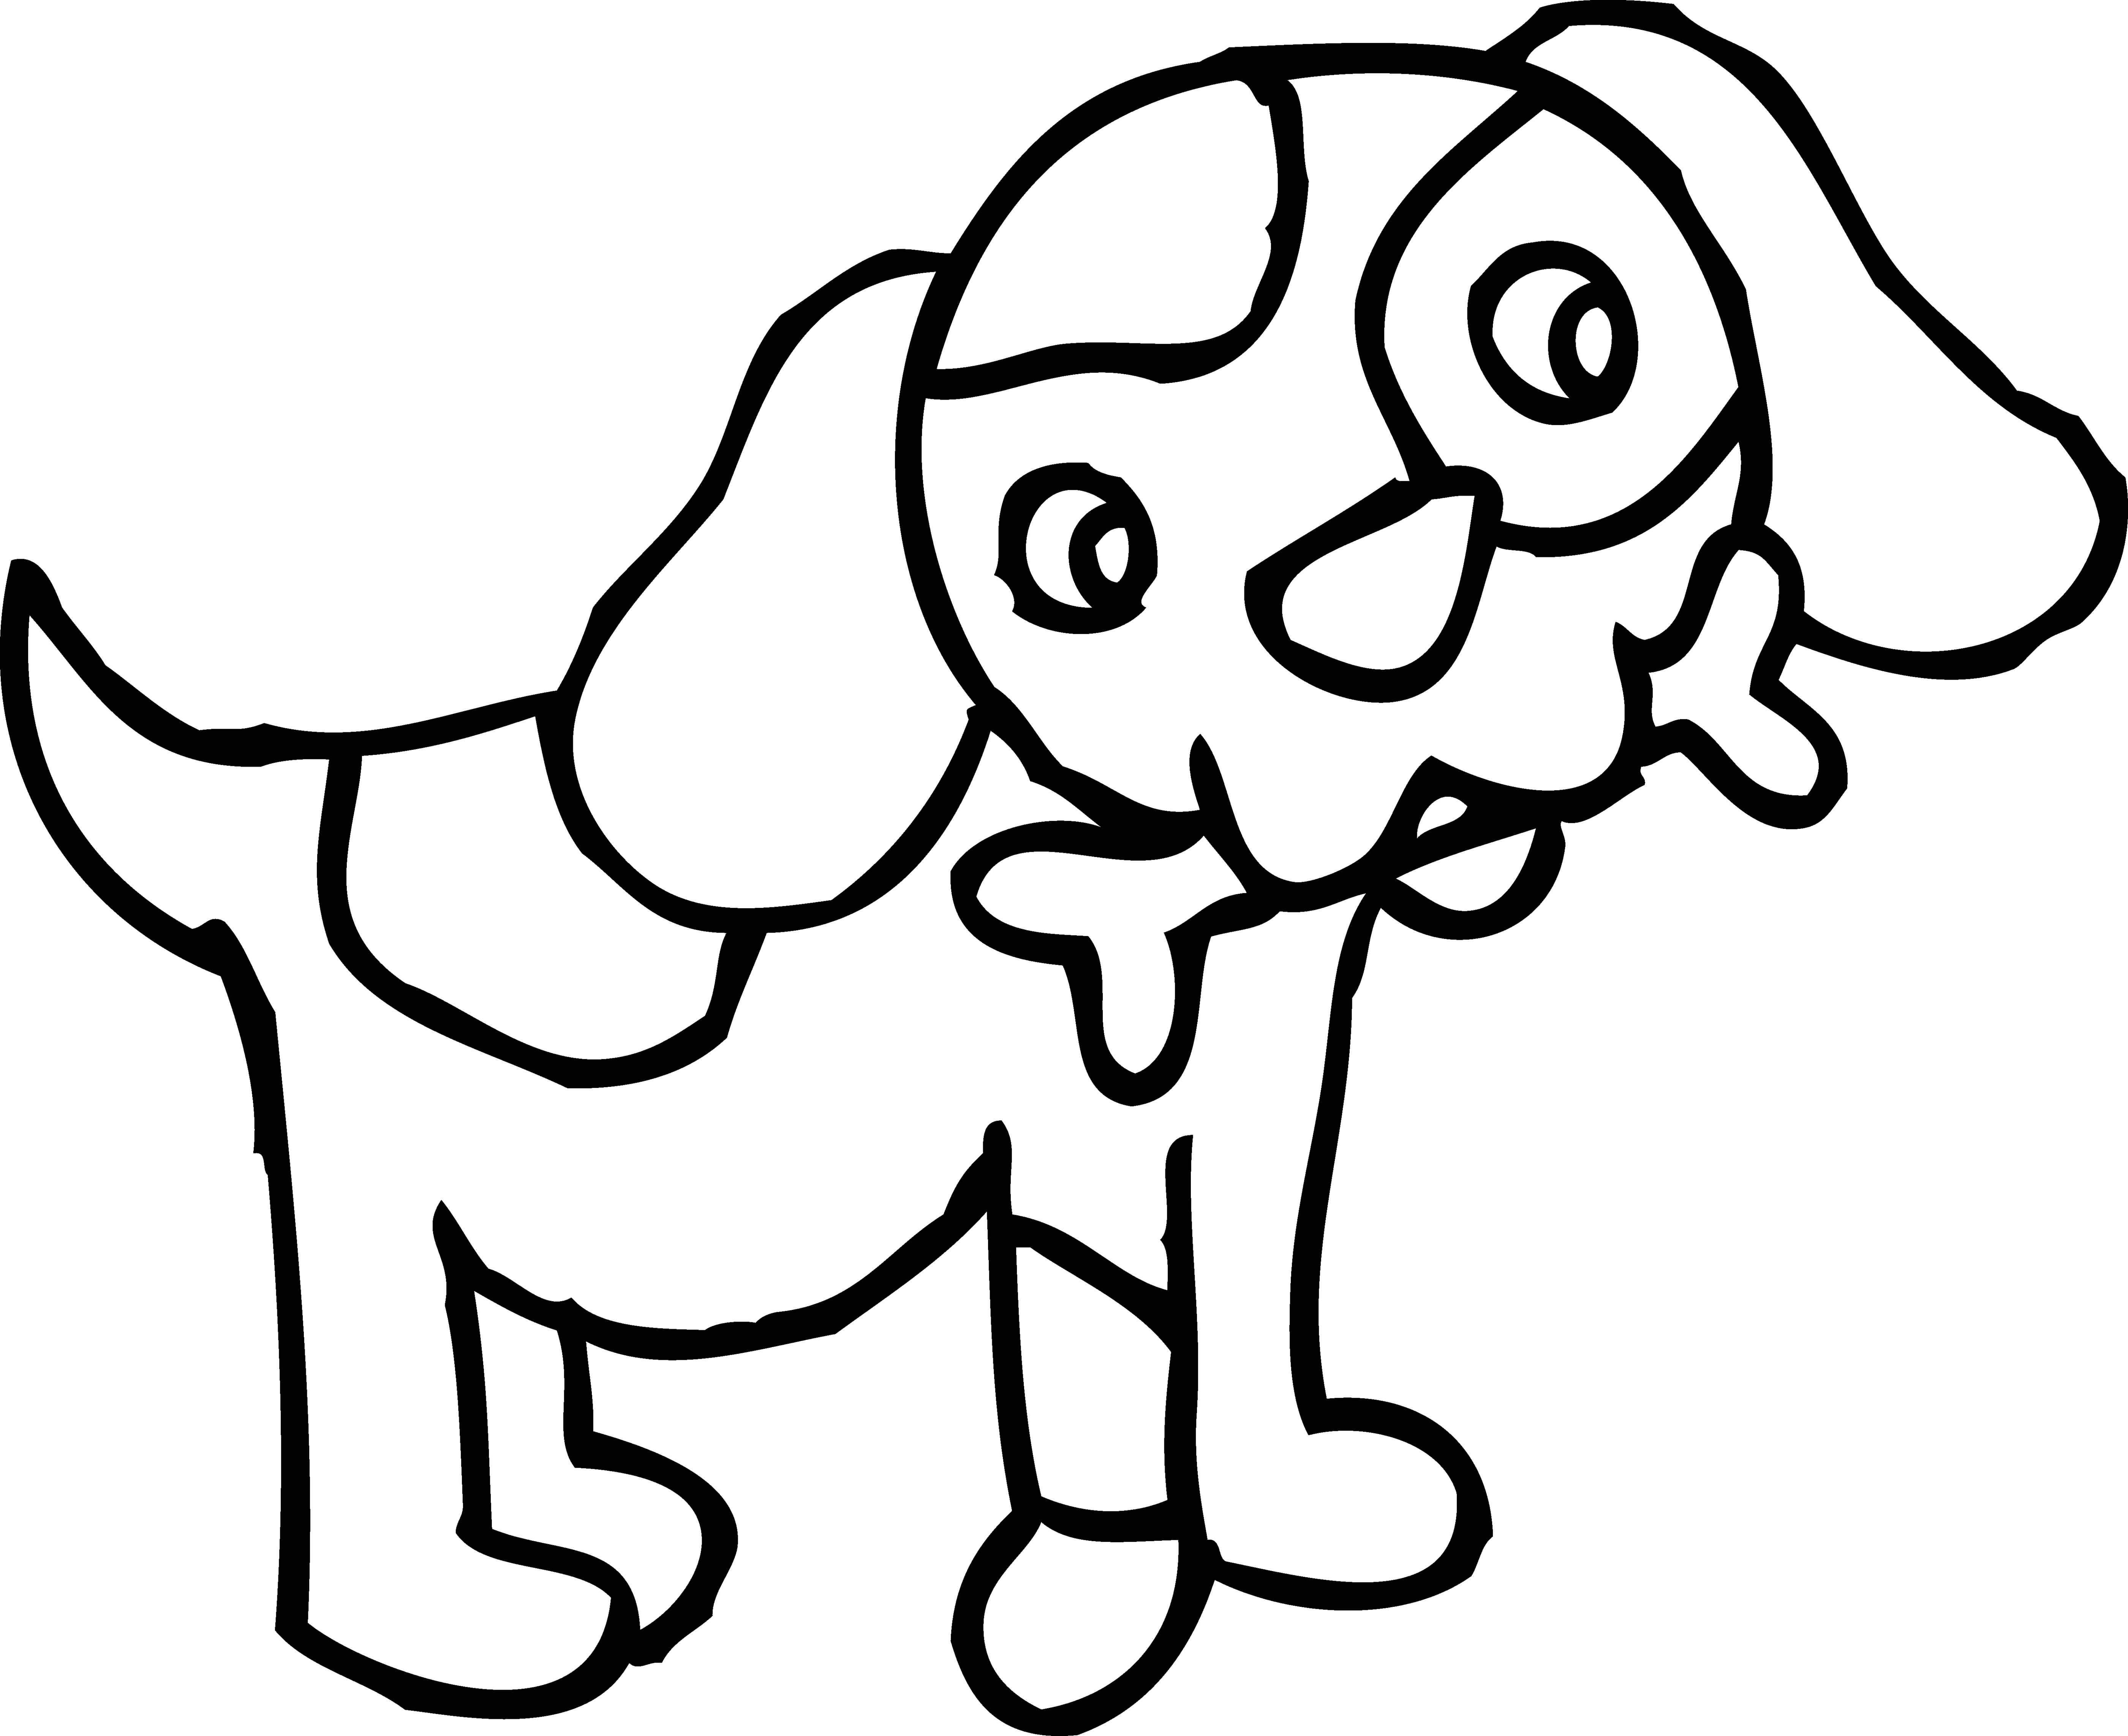 svg black and white Dog drawing at getdrawings. Pet clipart black and white